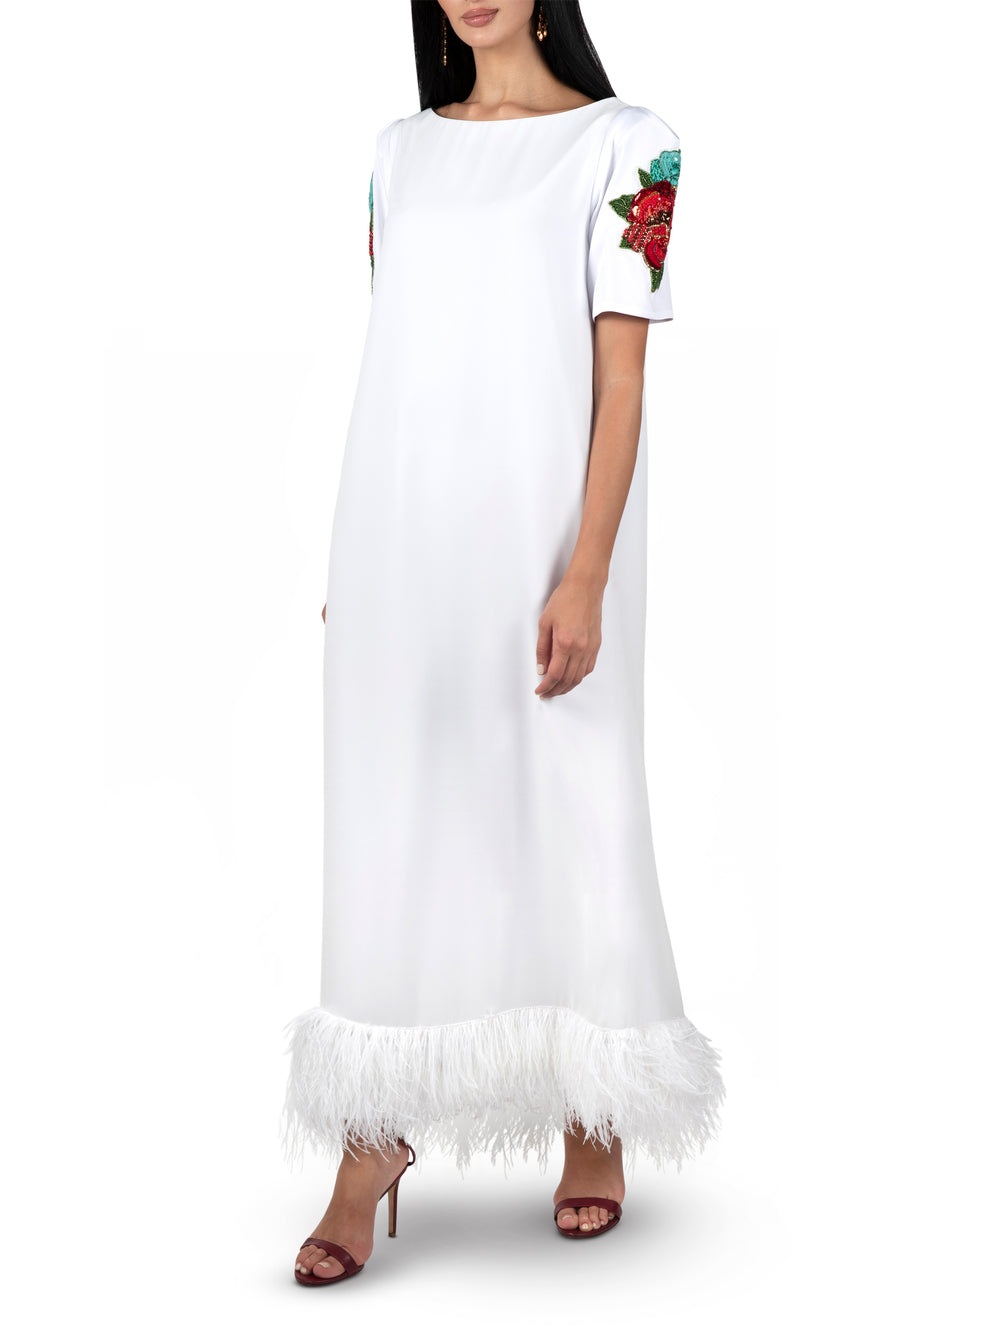 Floral White Feather Dress